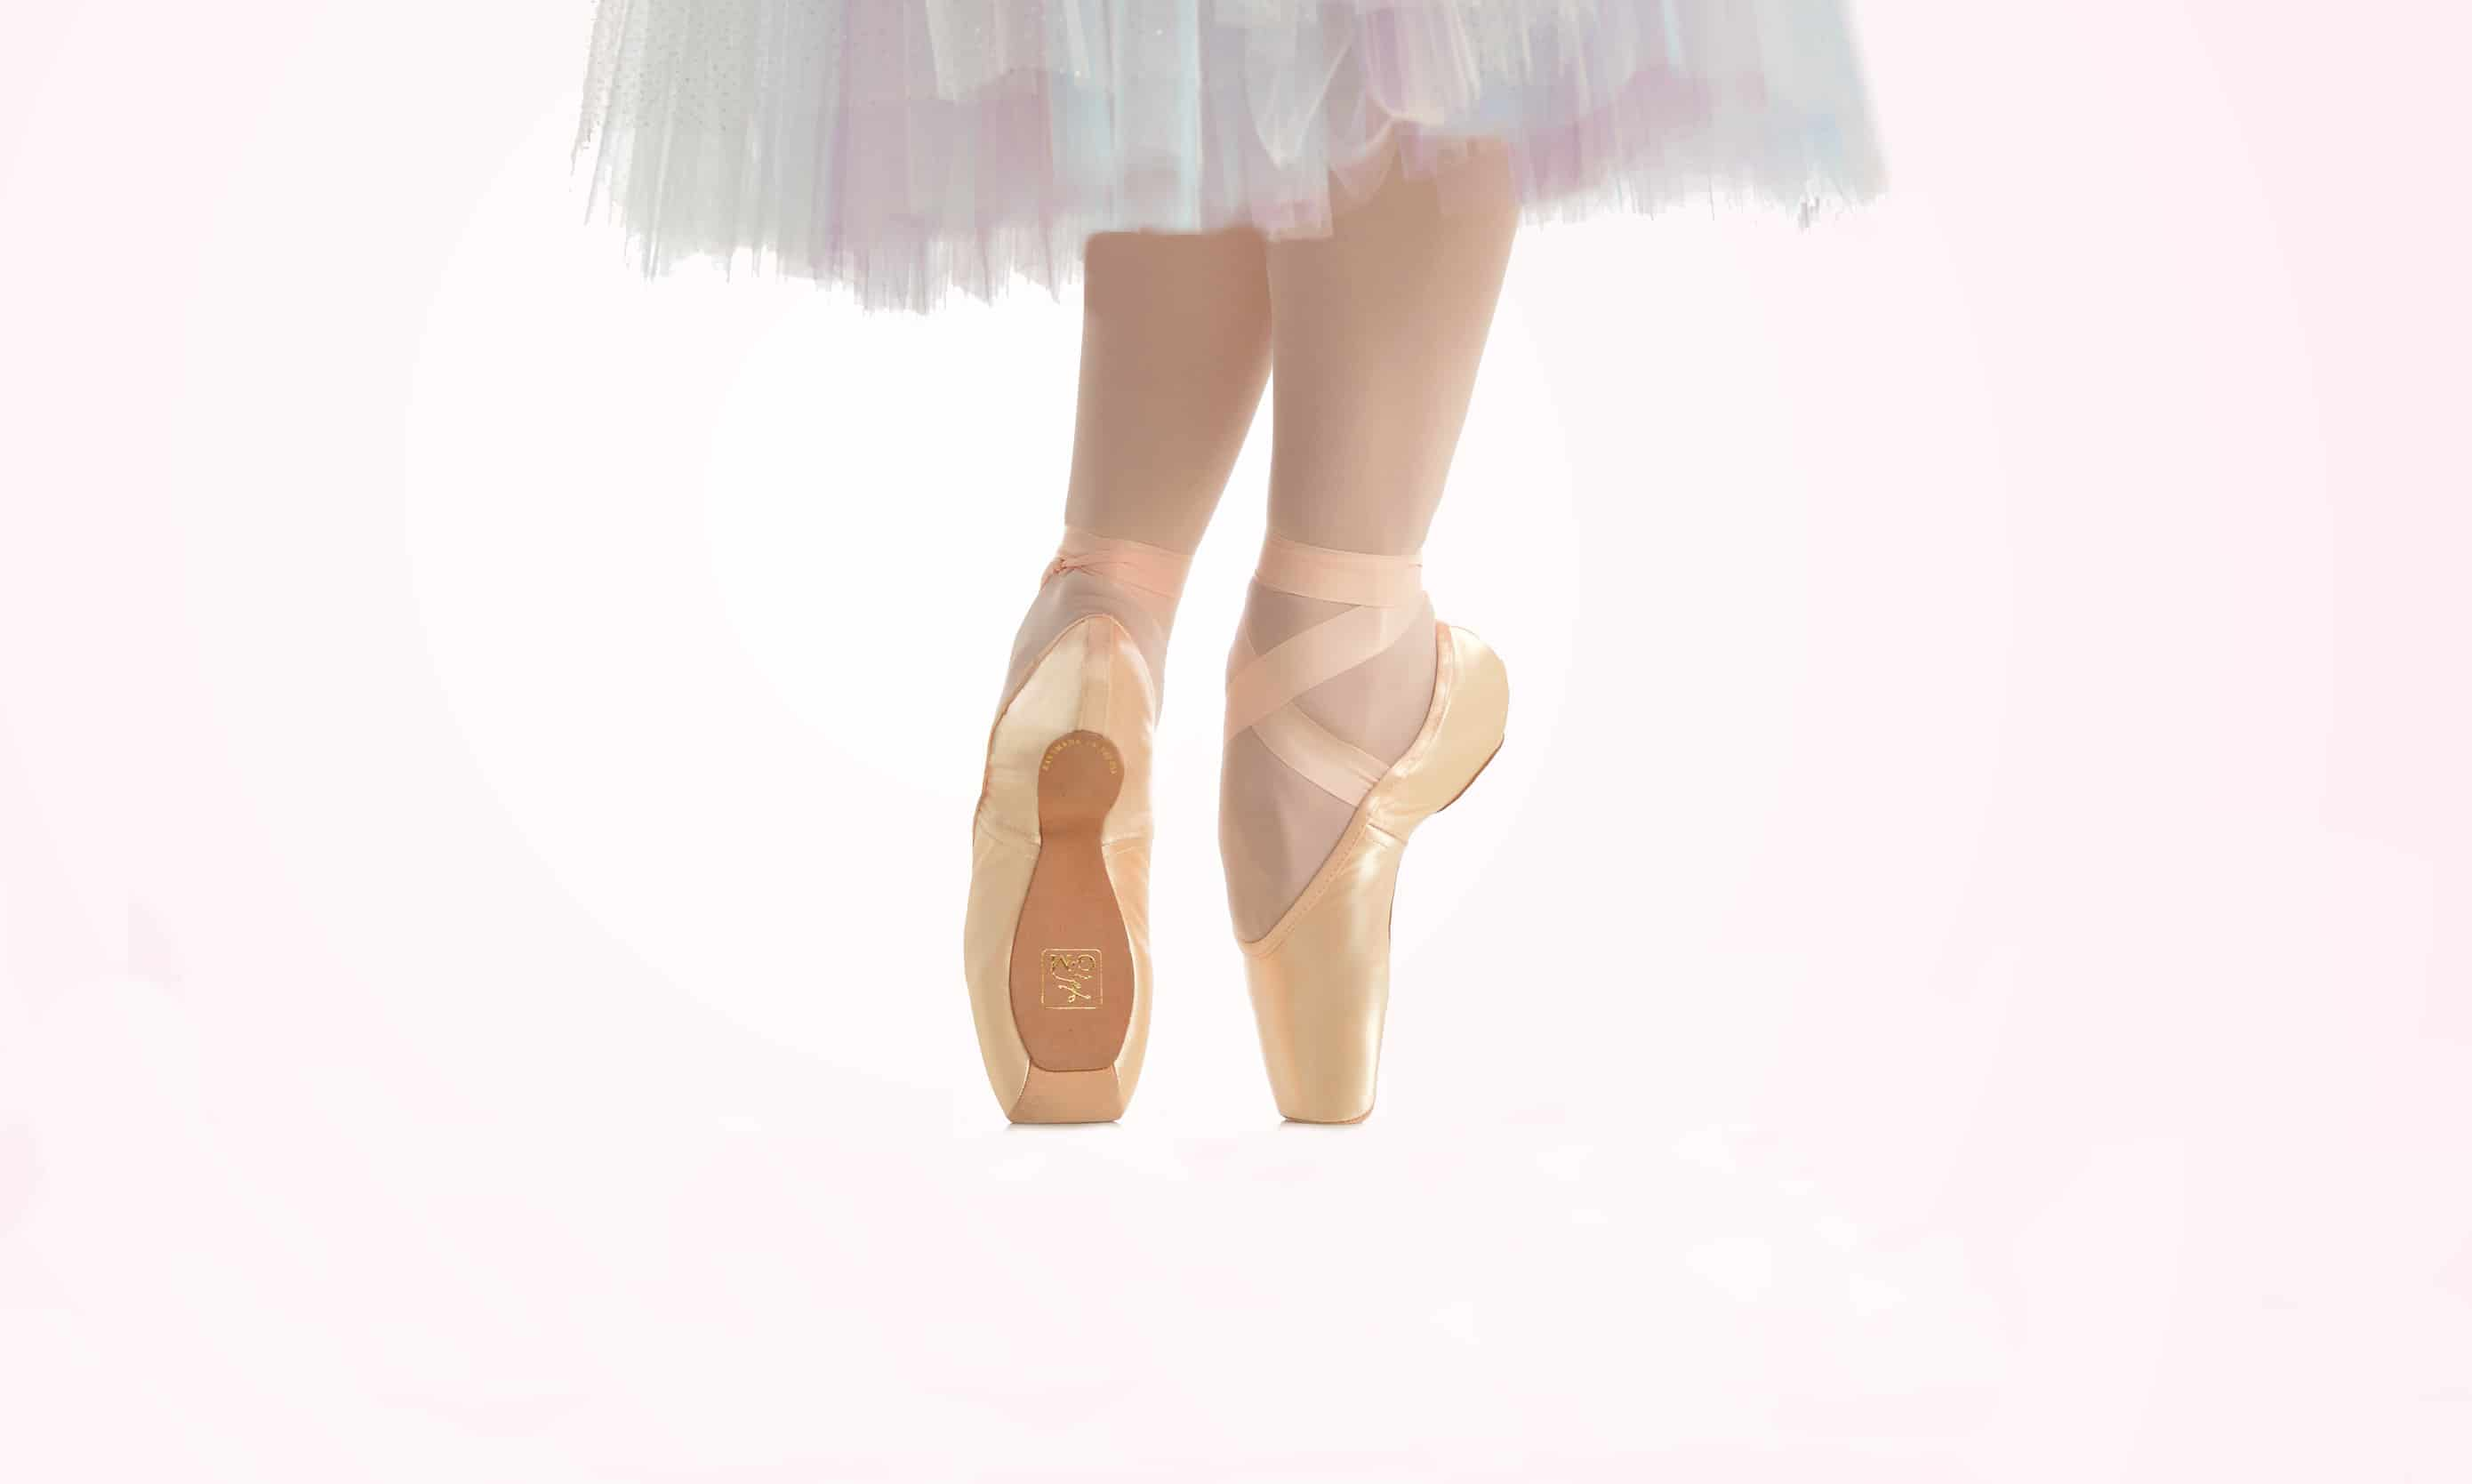 Ballet shoes? No, just someone getting artistic with the